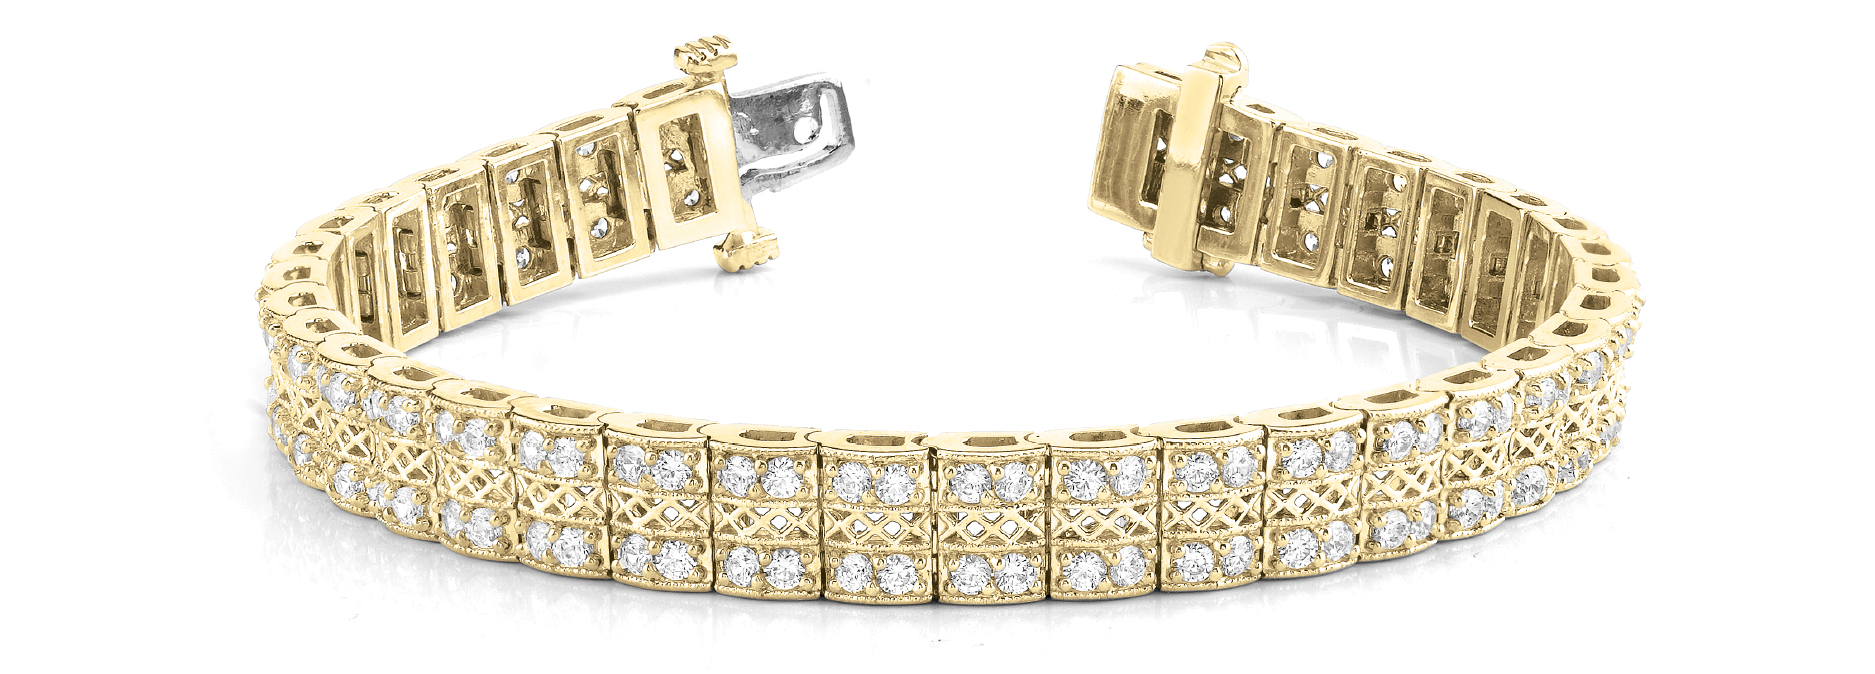 Multi Row Duo Round Diamond Filigree Bracelet 3.04 Ct. Yellow Gold